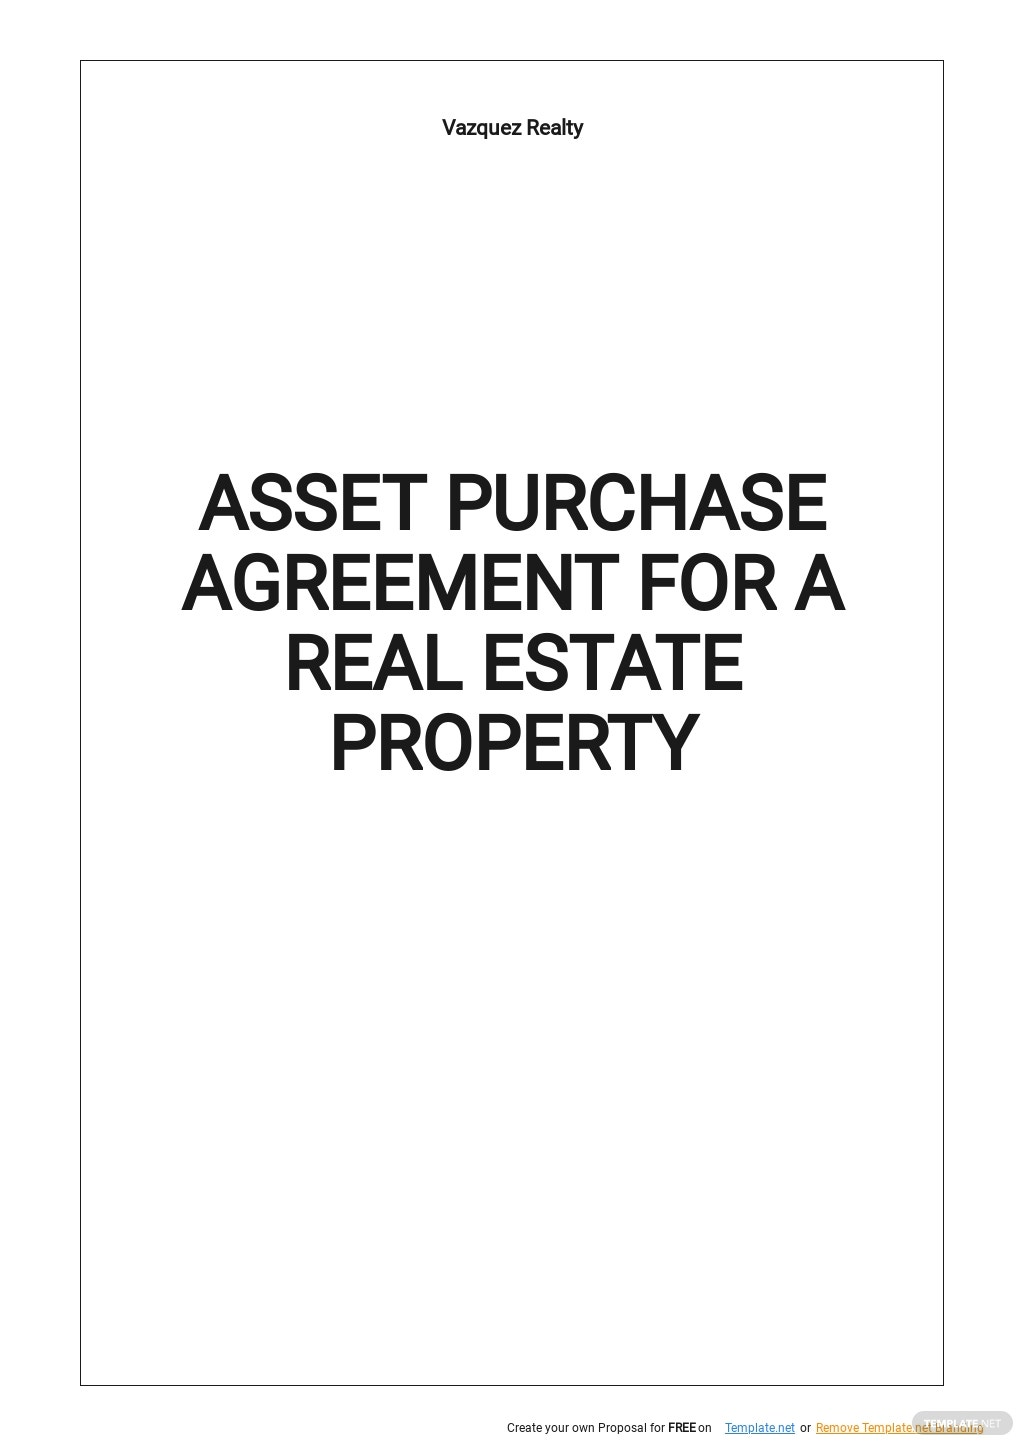 Asset Purchase Agreement For a Real Estate Property Template.jpe